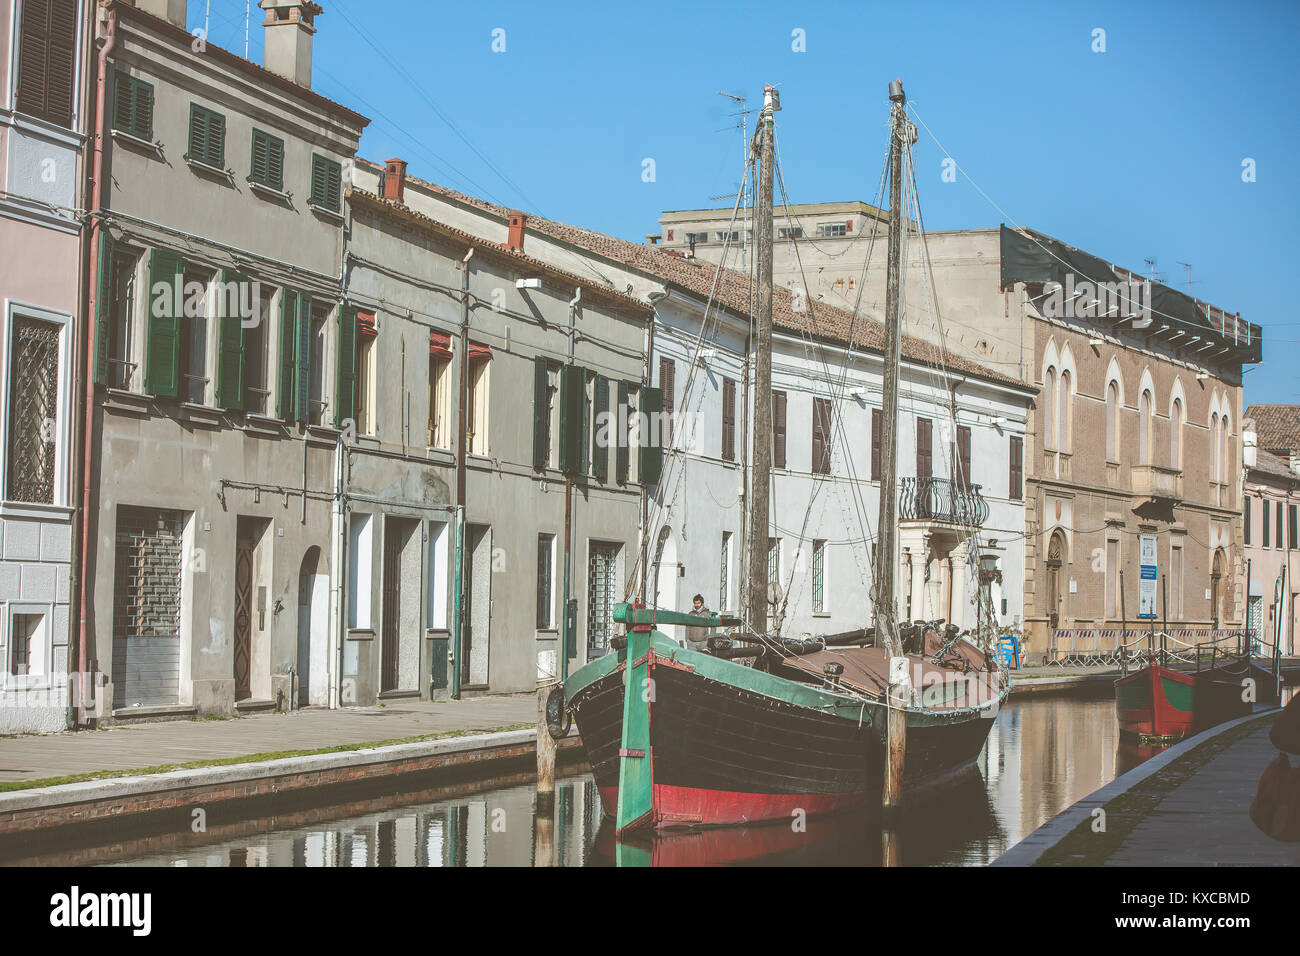 Comacchio, Italy. A boat in a channel of the italian city called 'the little Venice' - Stock Image